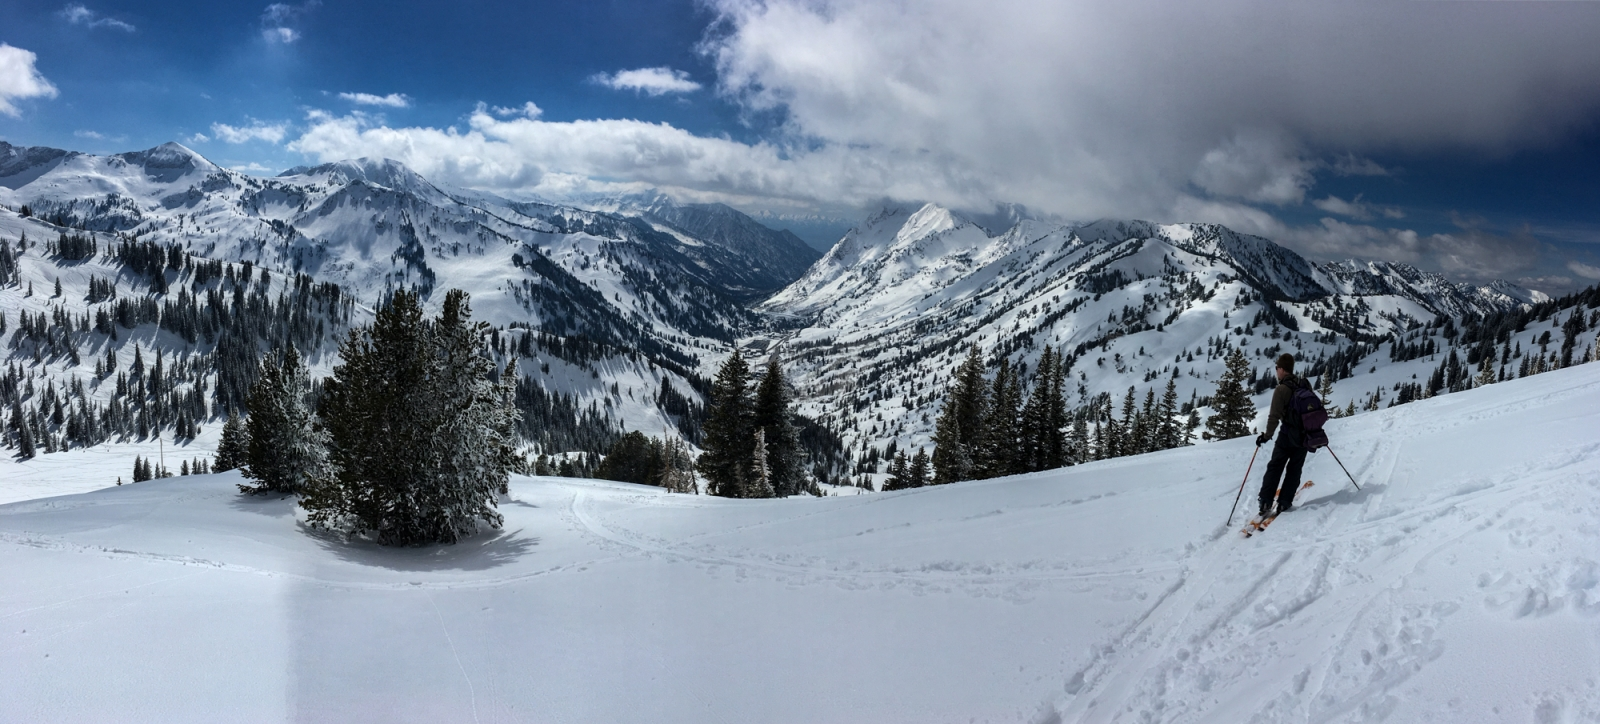 Grizzly Gulch, Little Cottonwood Canyon